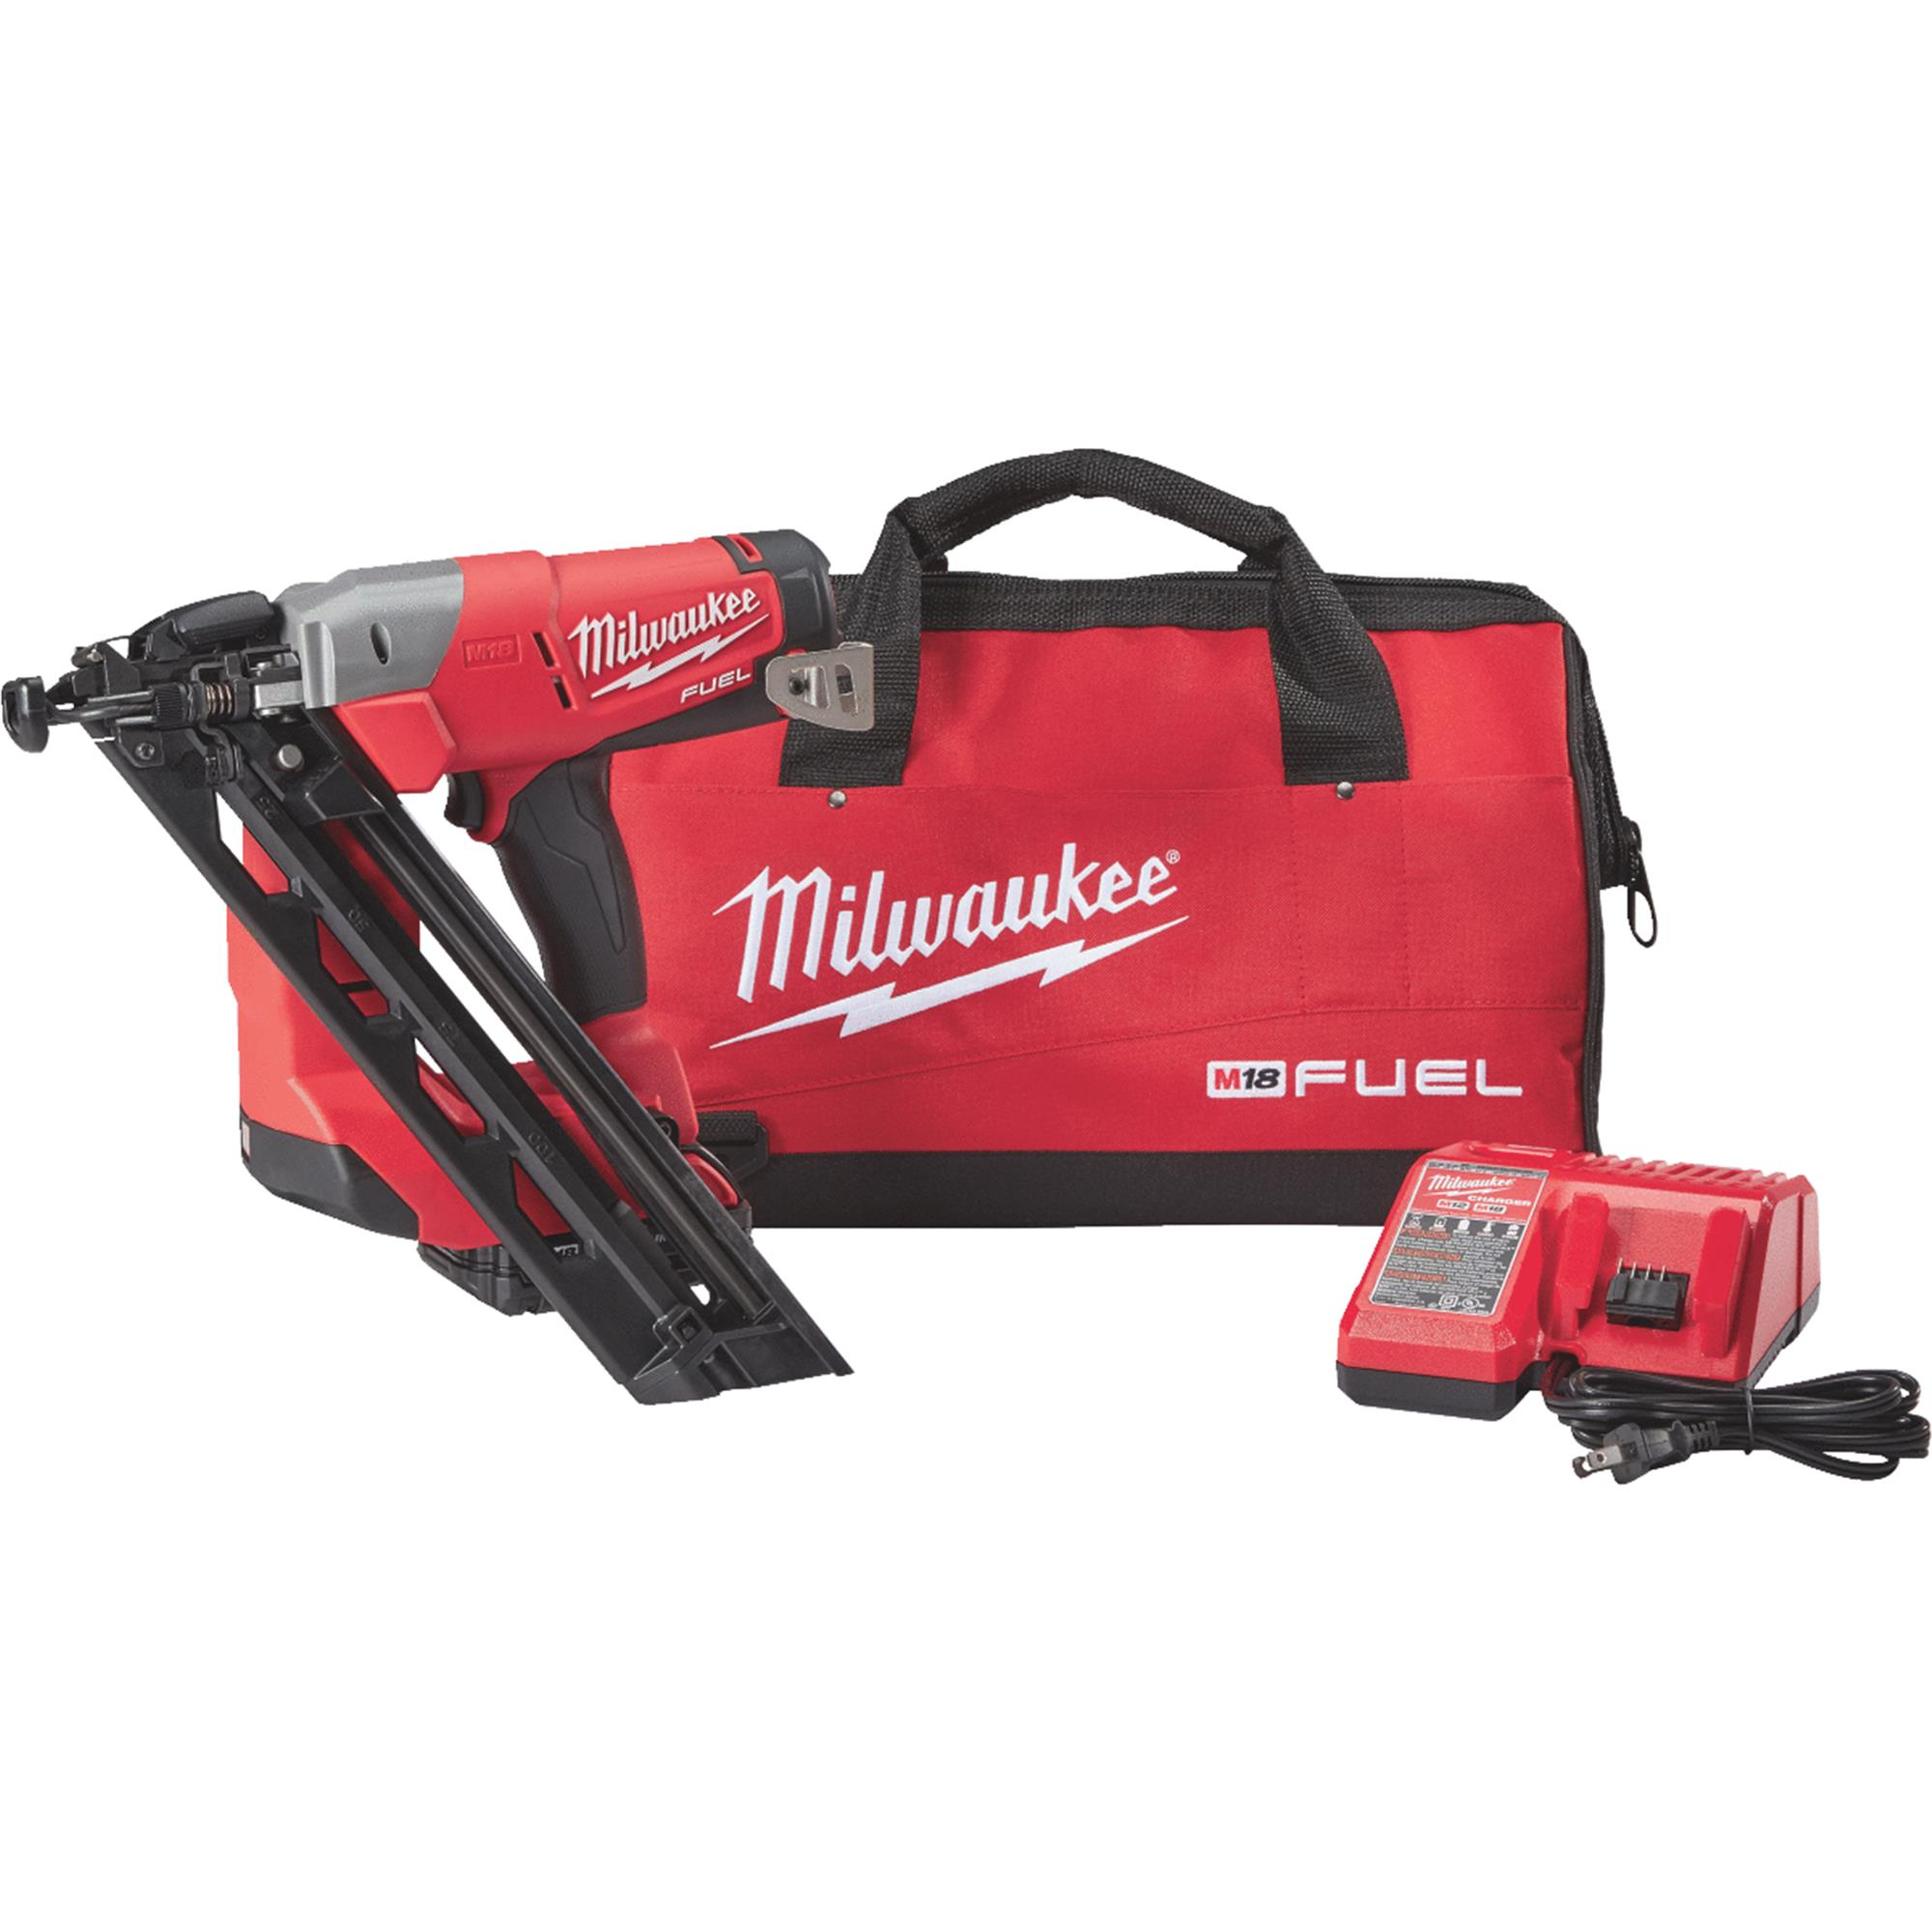 Milwaukee M18 FUEL Brushless Cordless Finish Nailer Kit by Milwaukee Elec.Tool